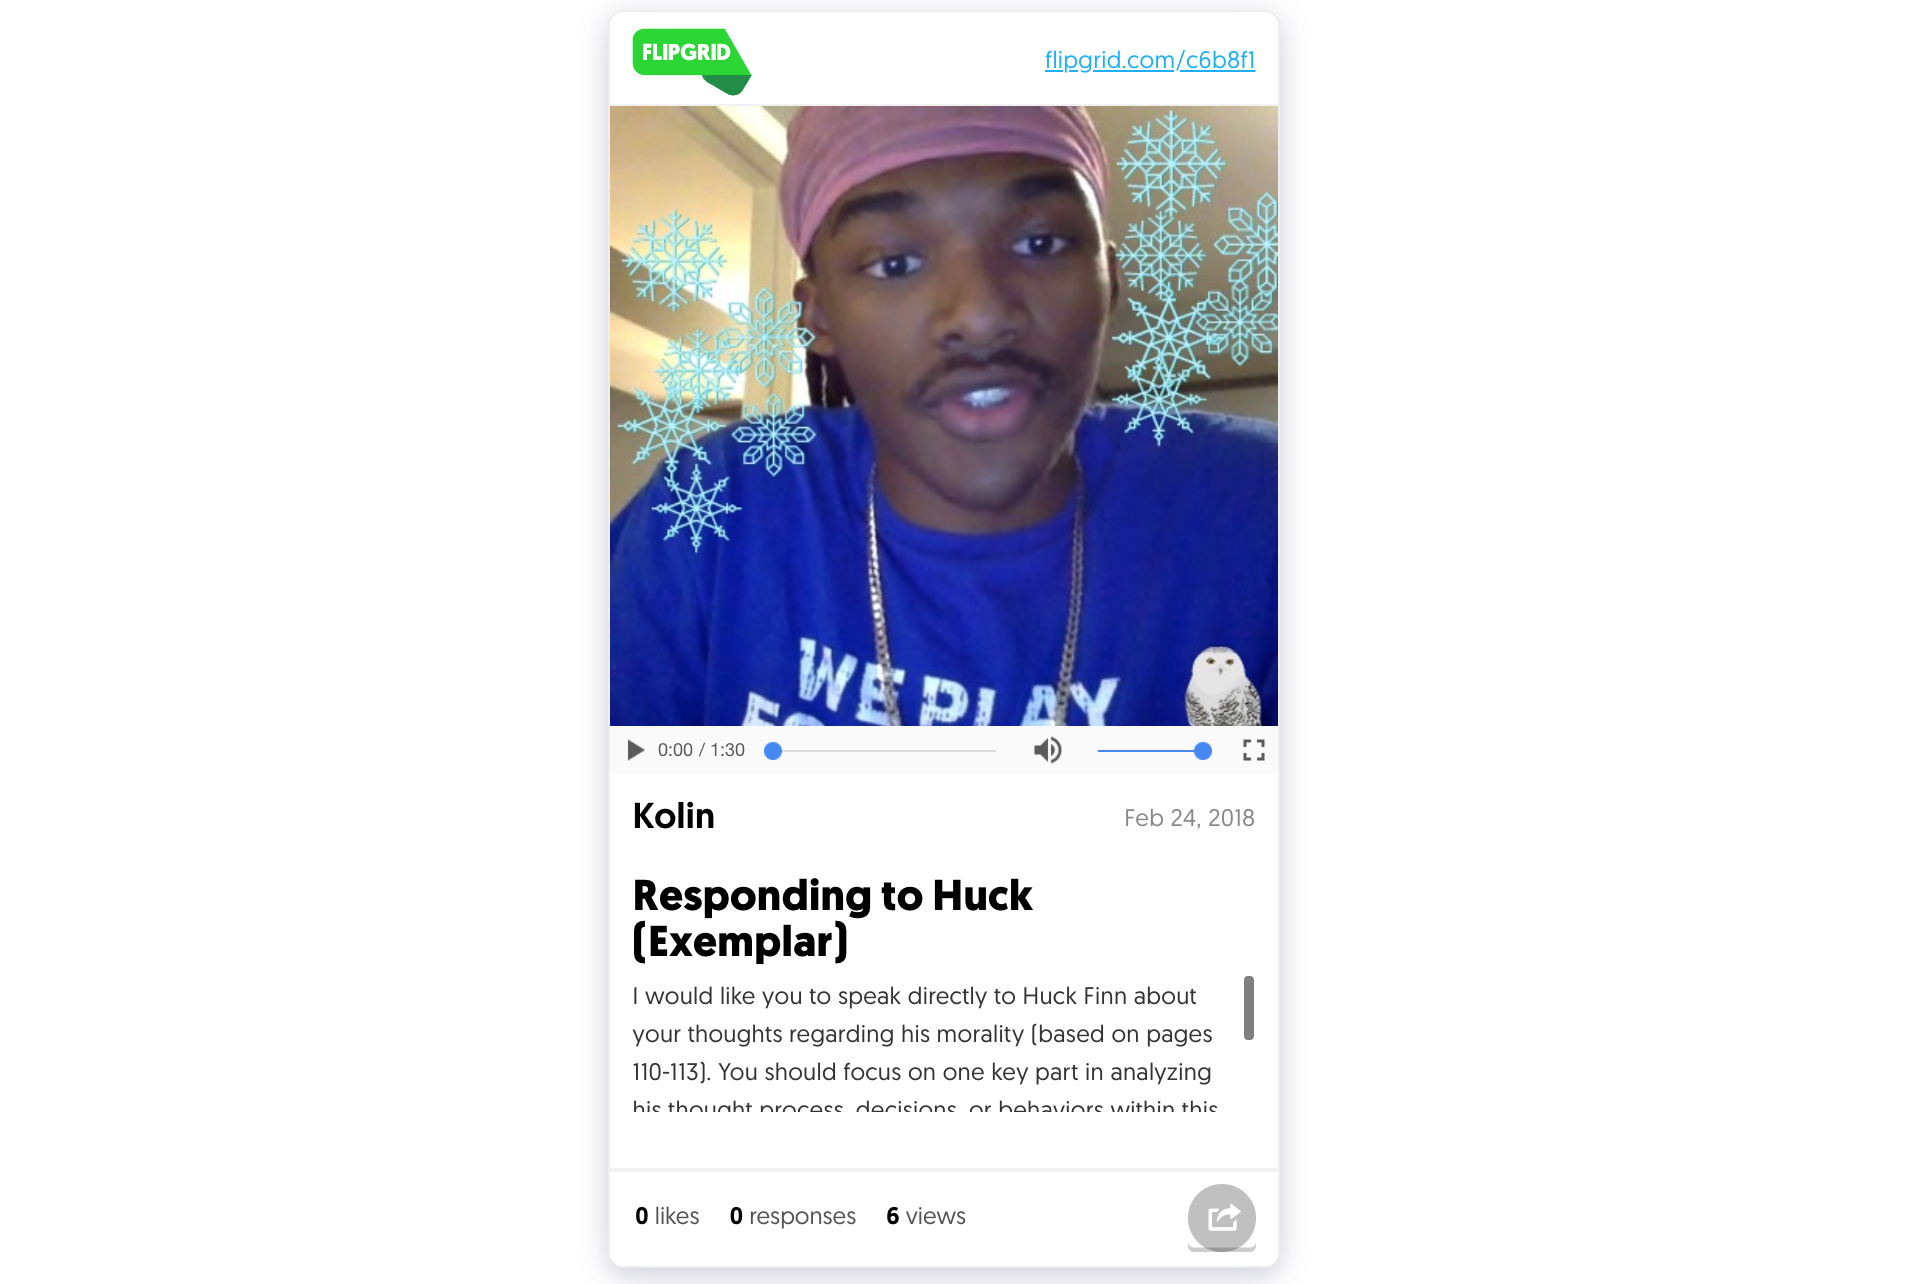 Check out Kolin's video message to Huck Finn  here .